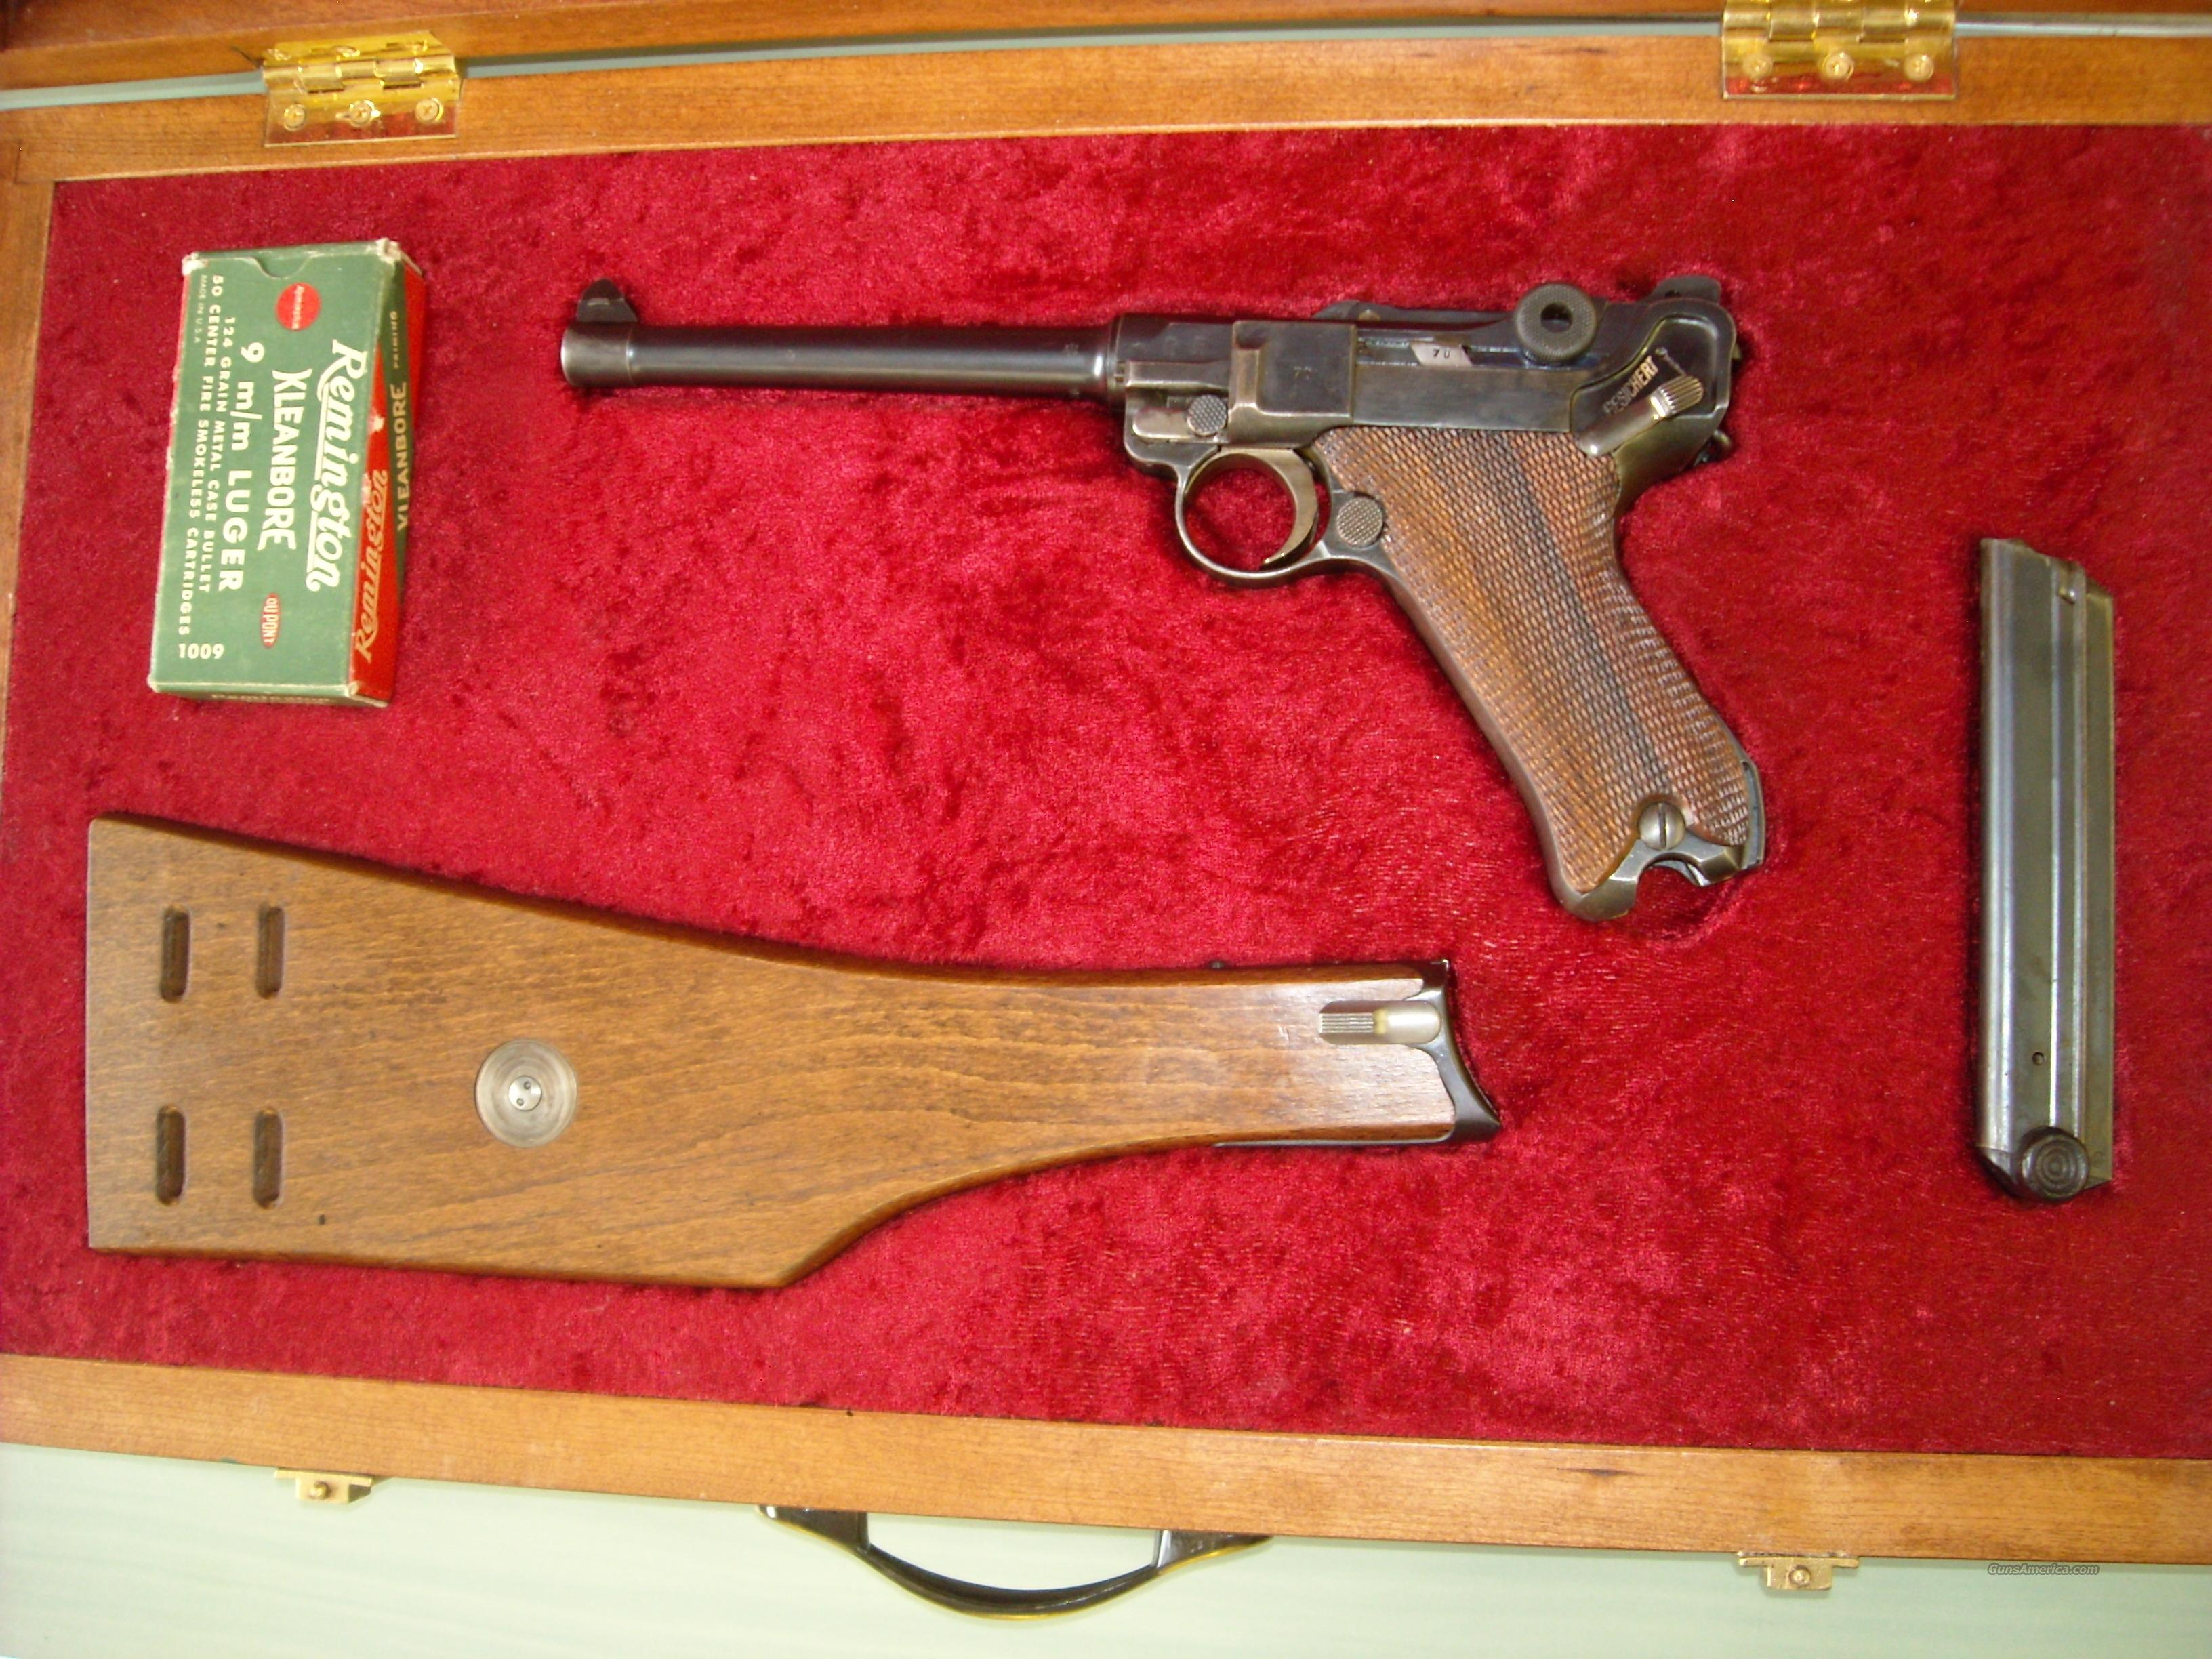 1920 Commercial Navy Luger  9mm  Guns > Pistols > Luger Pistols